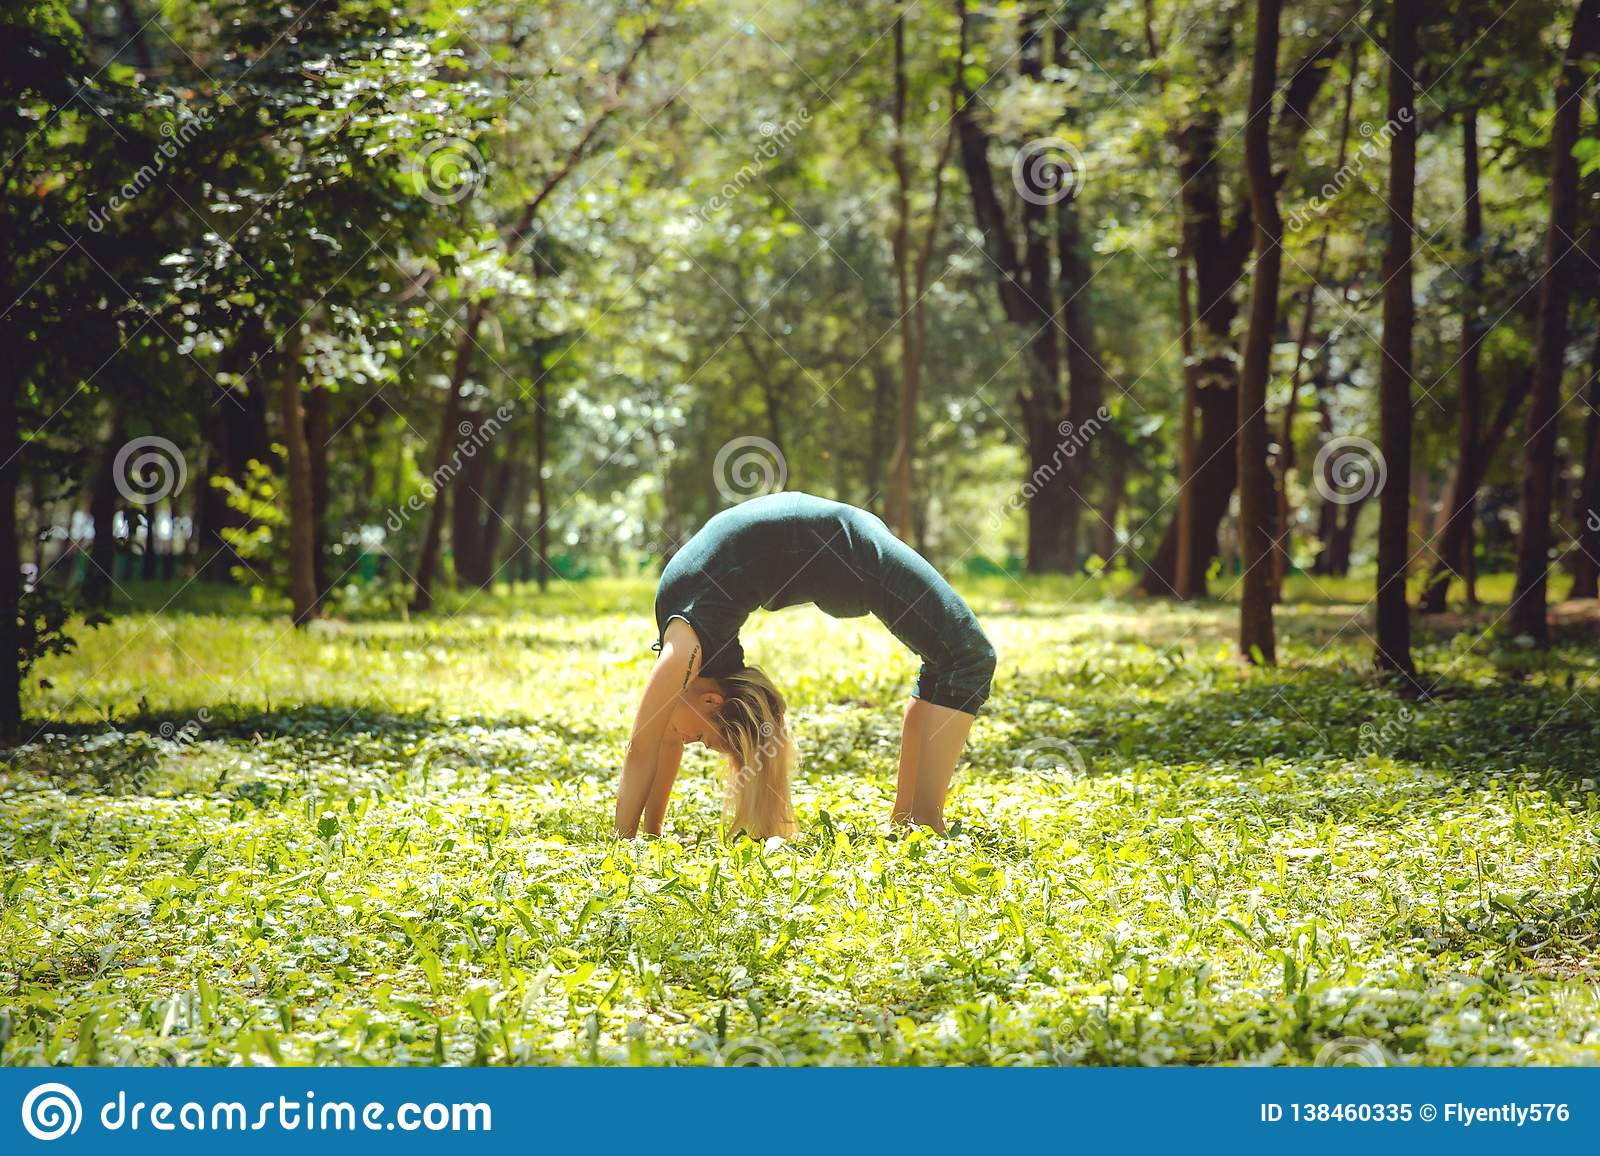 Urdhva Dhanurasana. Yoga Asanas In Nature. Yoga Poses Everyday